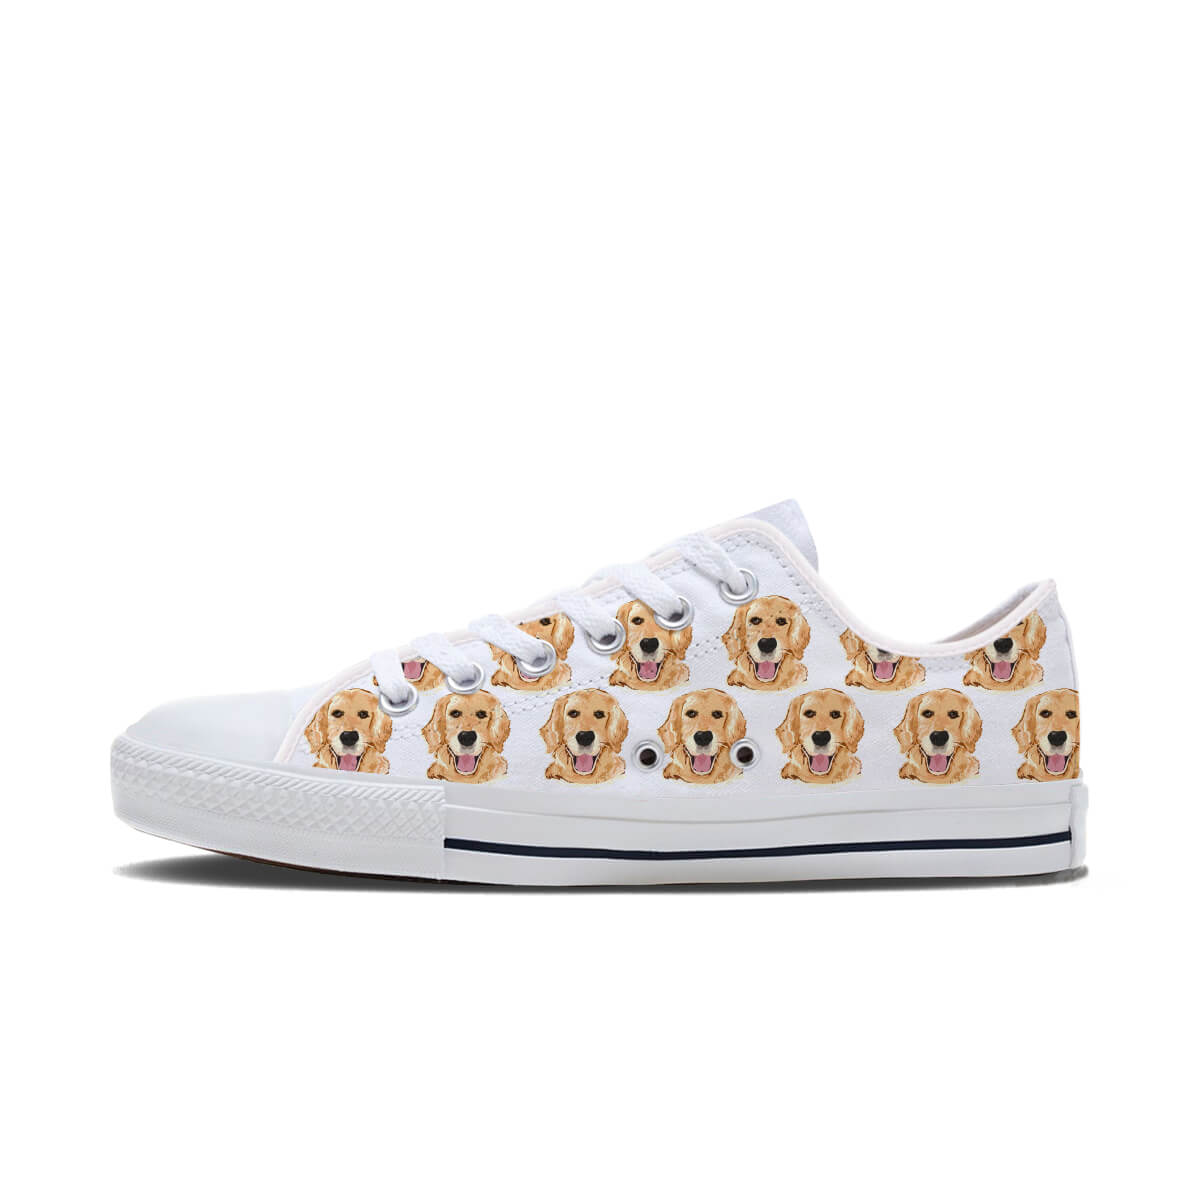 Golden Retriever Shoes